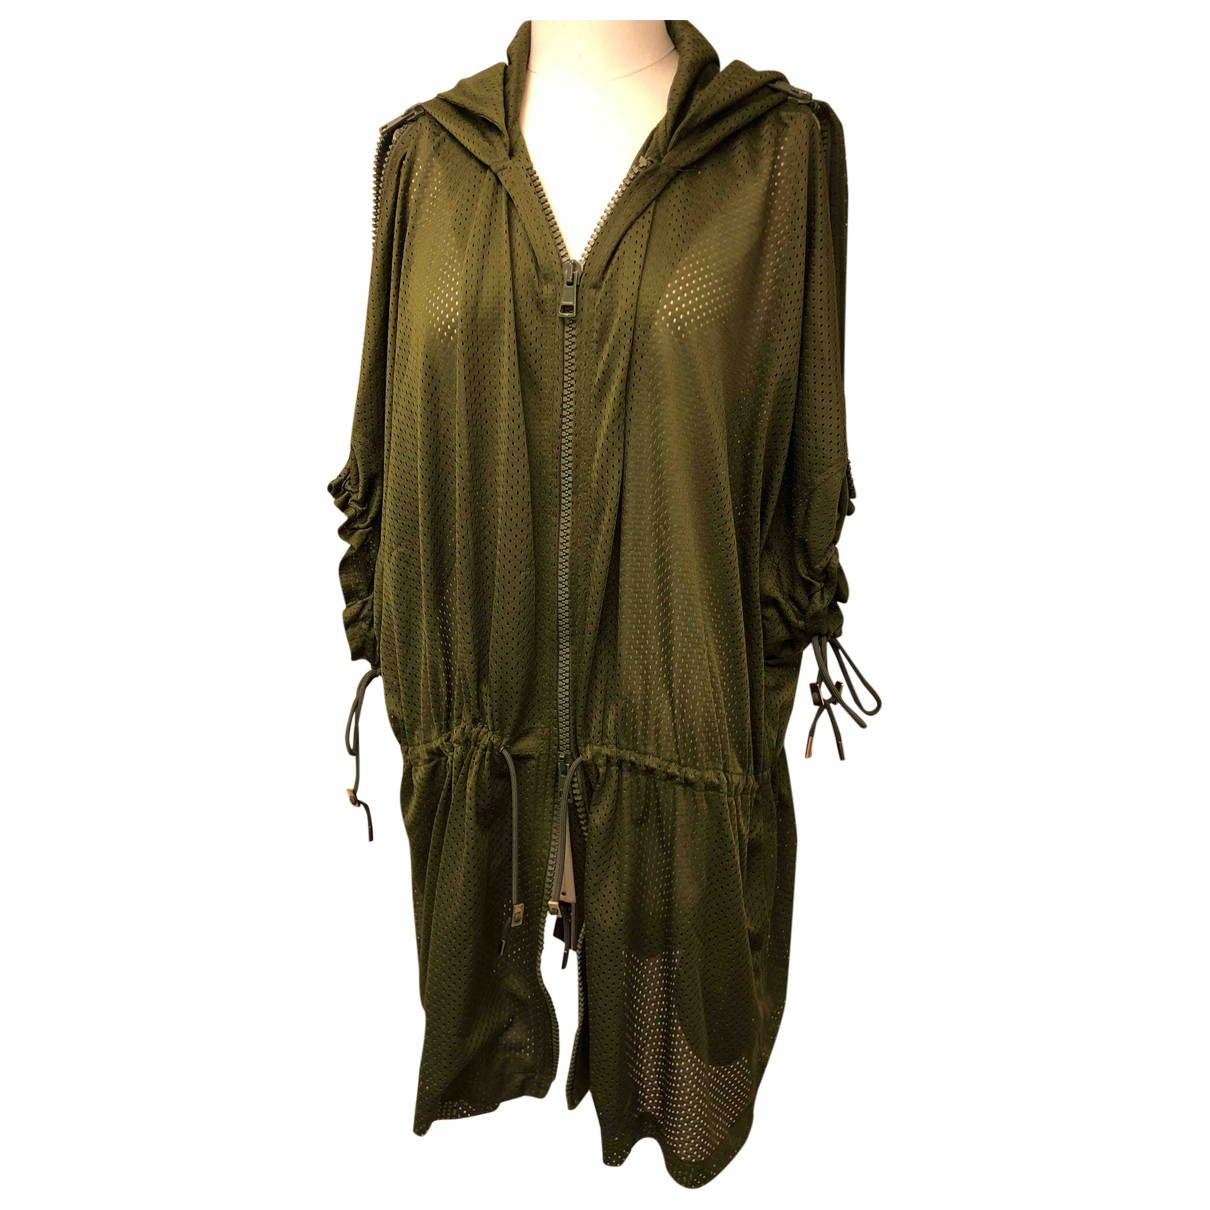 Givenchy \N Green coat for Women M International